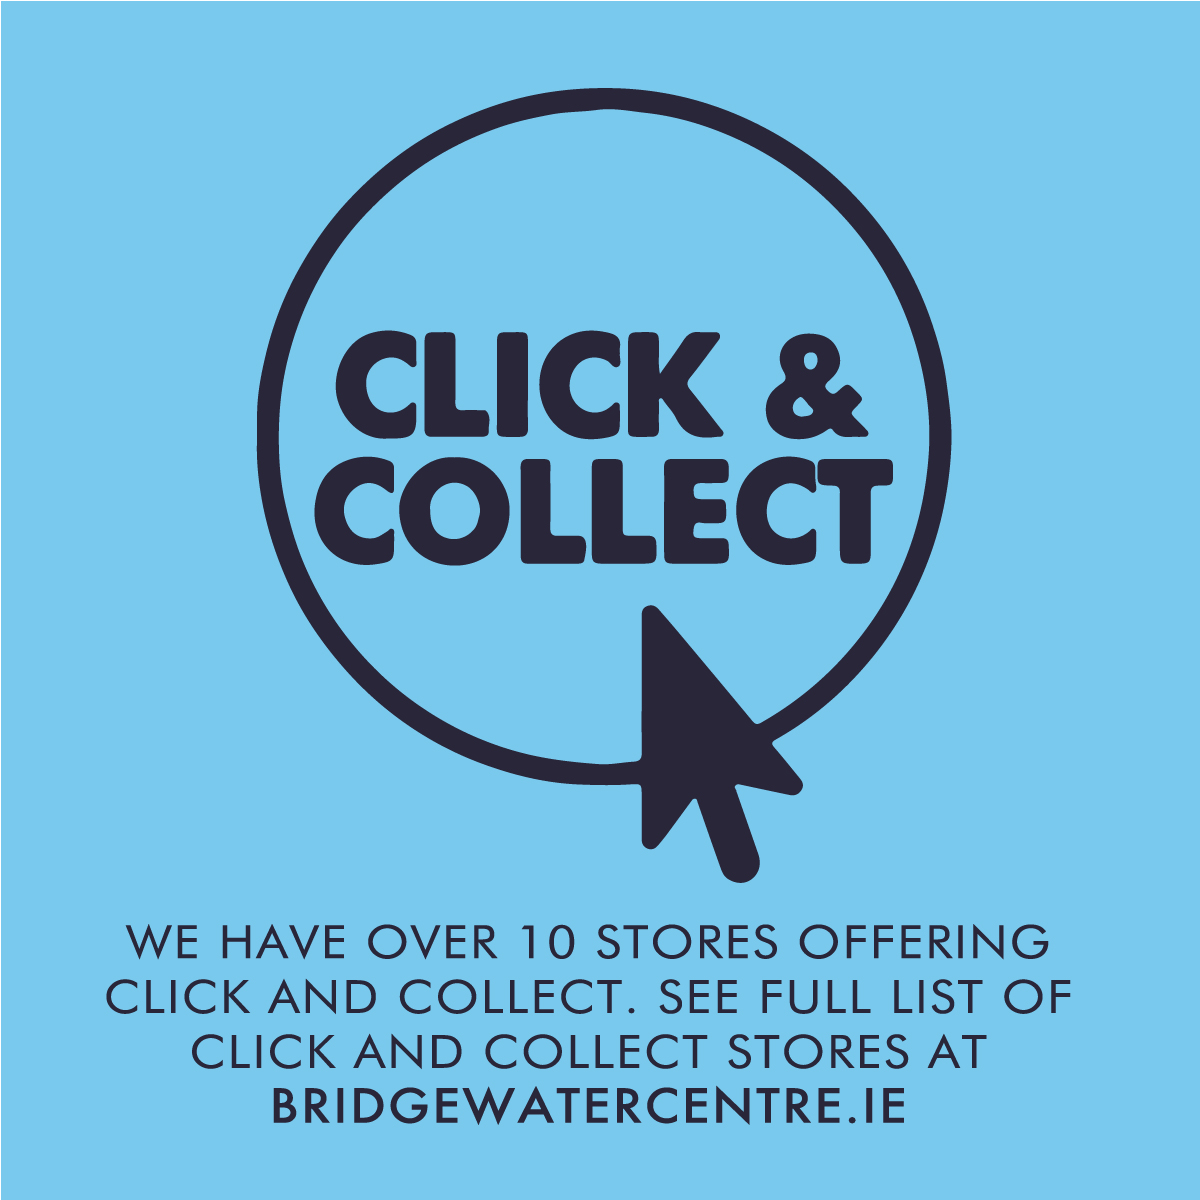 CLICK & COLLECT STORES AT BRIDGEWATER